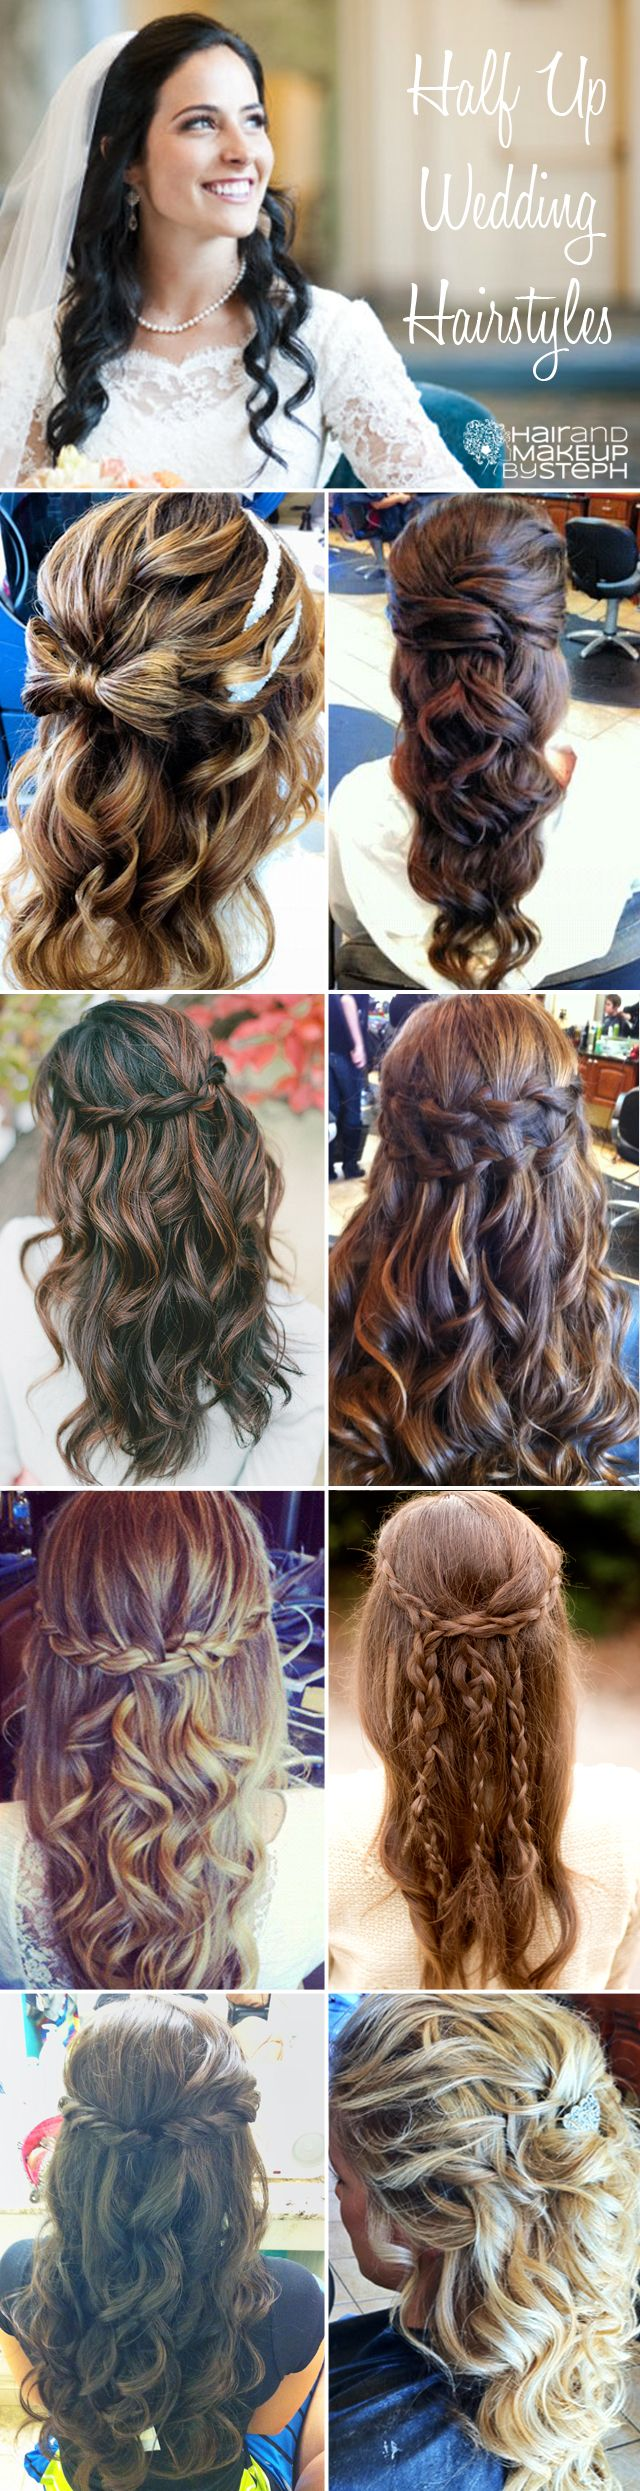 half up wedding hairstyles via blog.hairandmakeu...